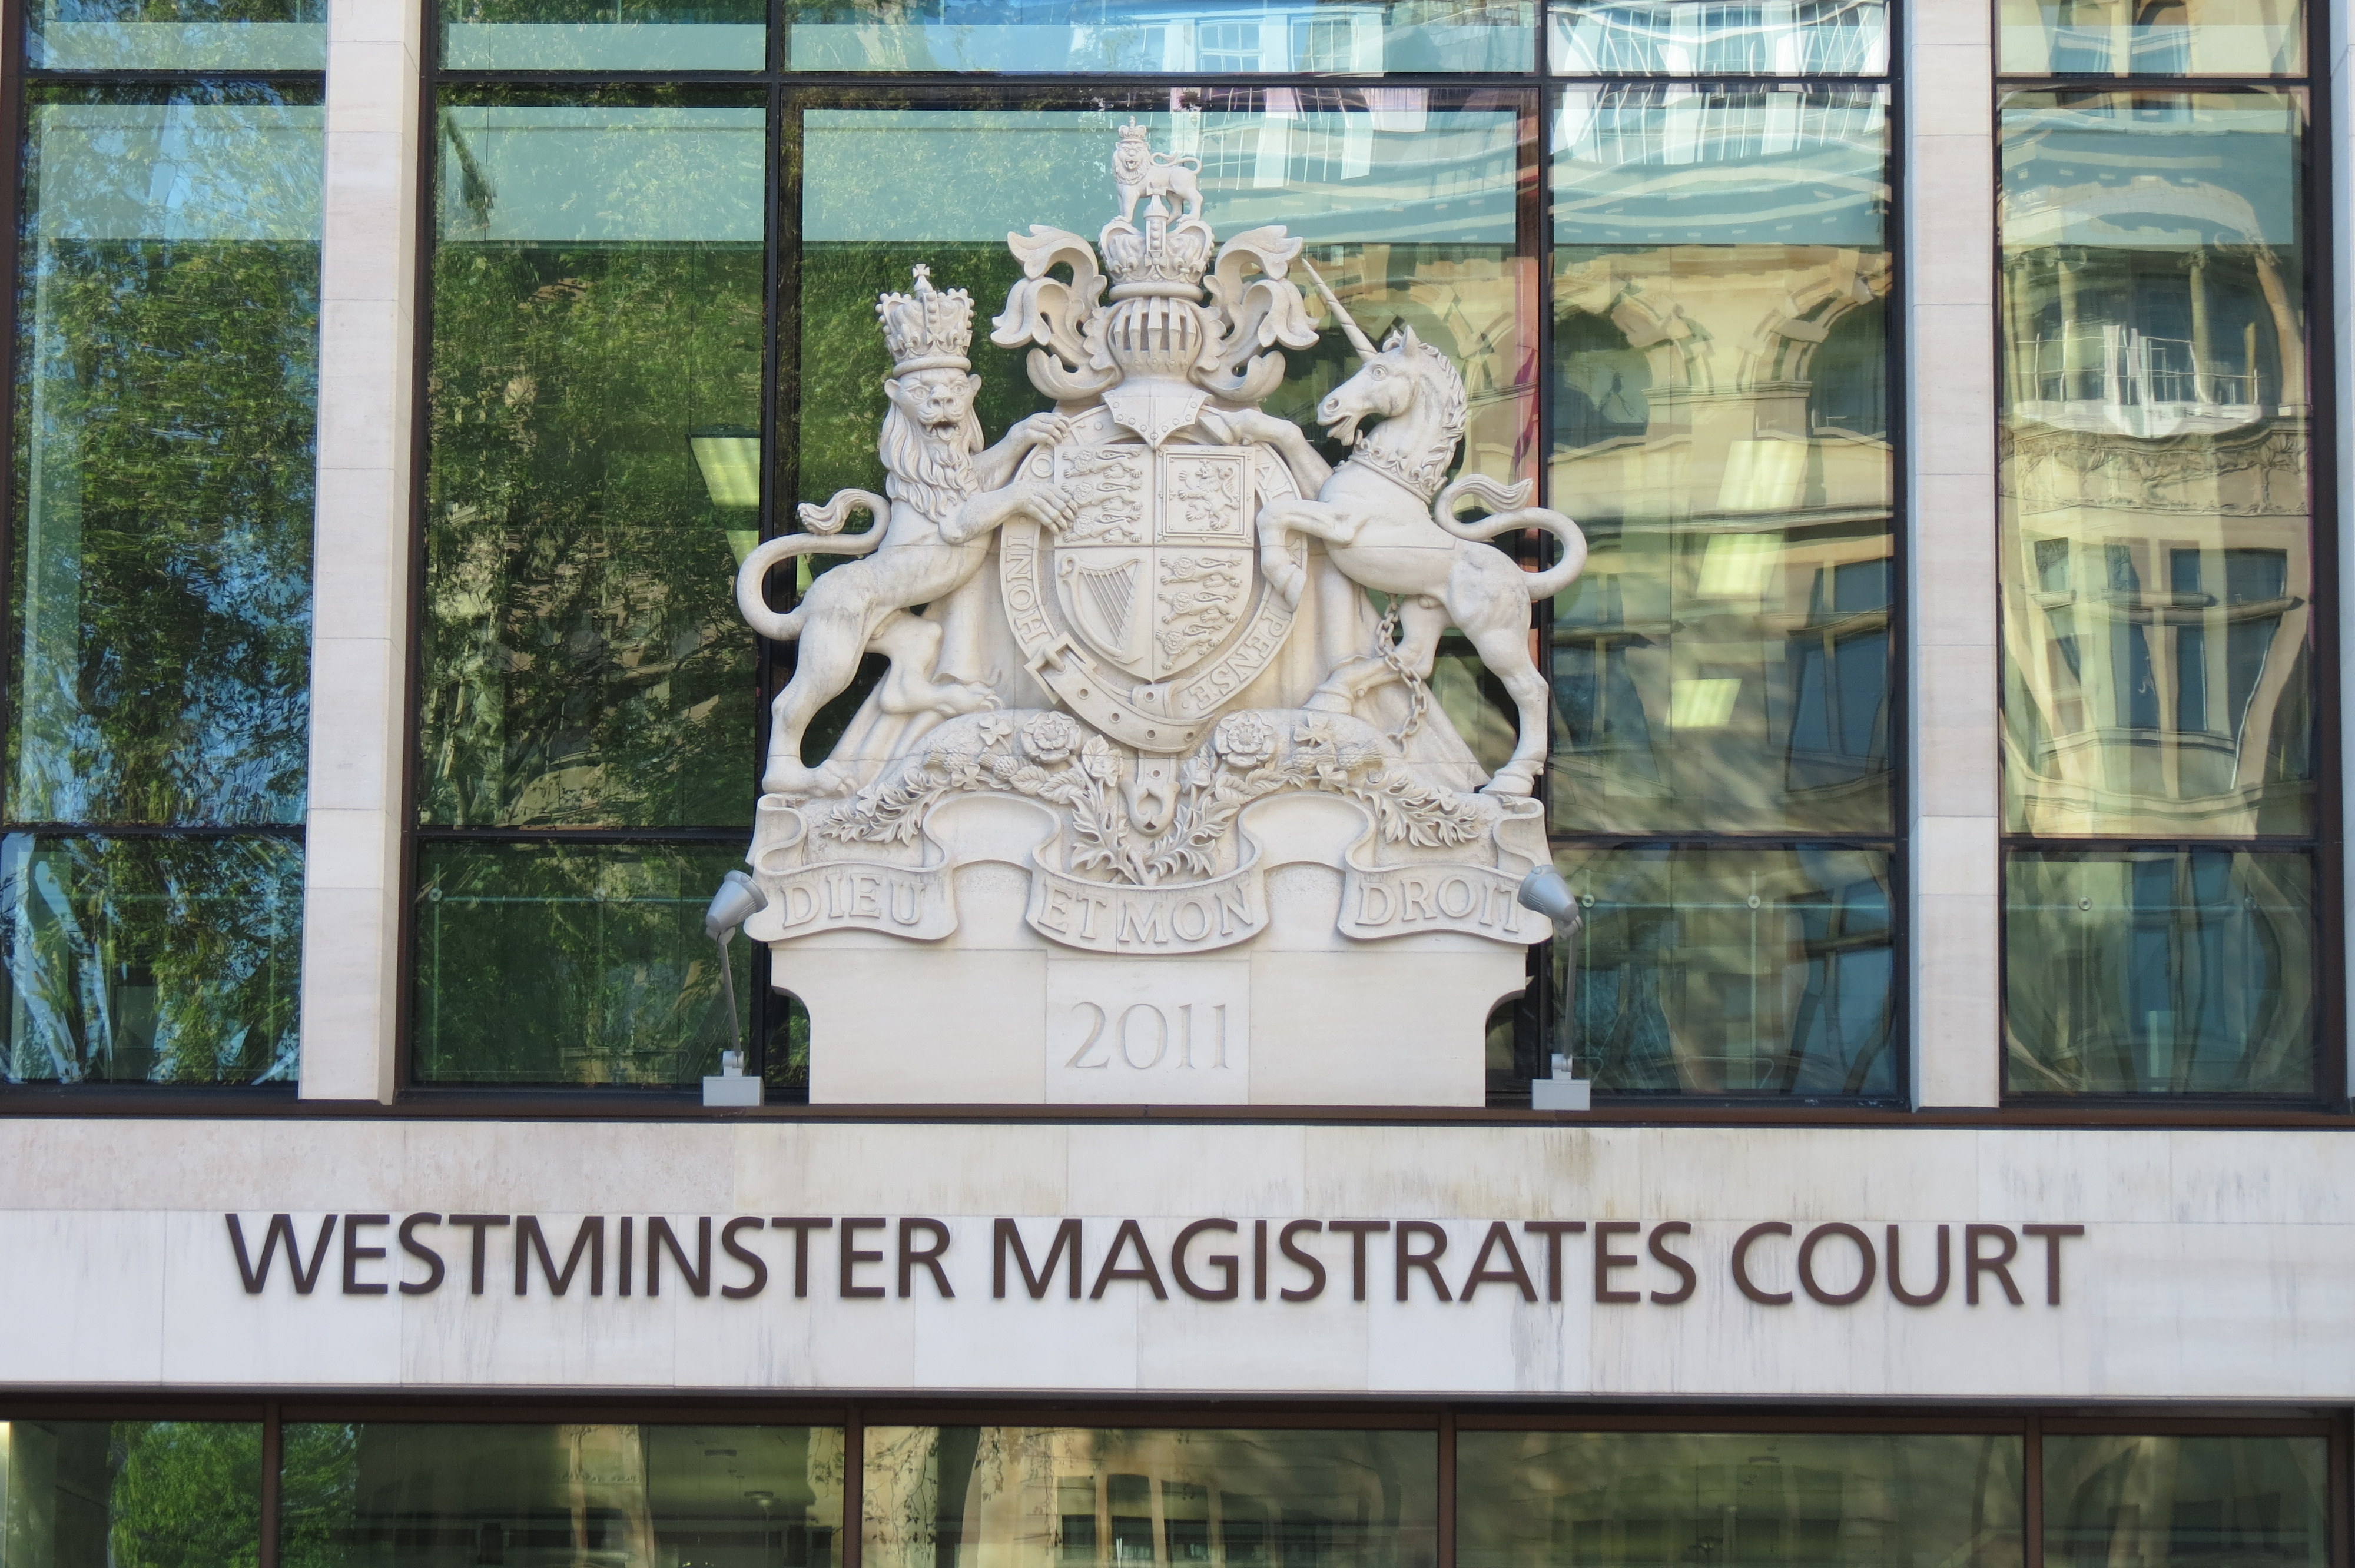 the magistrates court Nearly all criminal cases start in magistrates' courts the less serious offences  are handled entirely in the magistrates' court, in fact more than 95% of all cases.